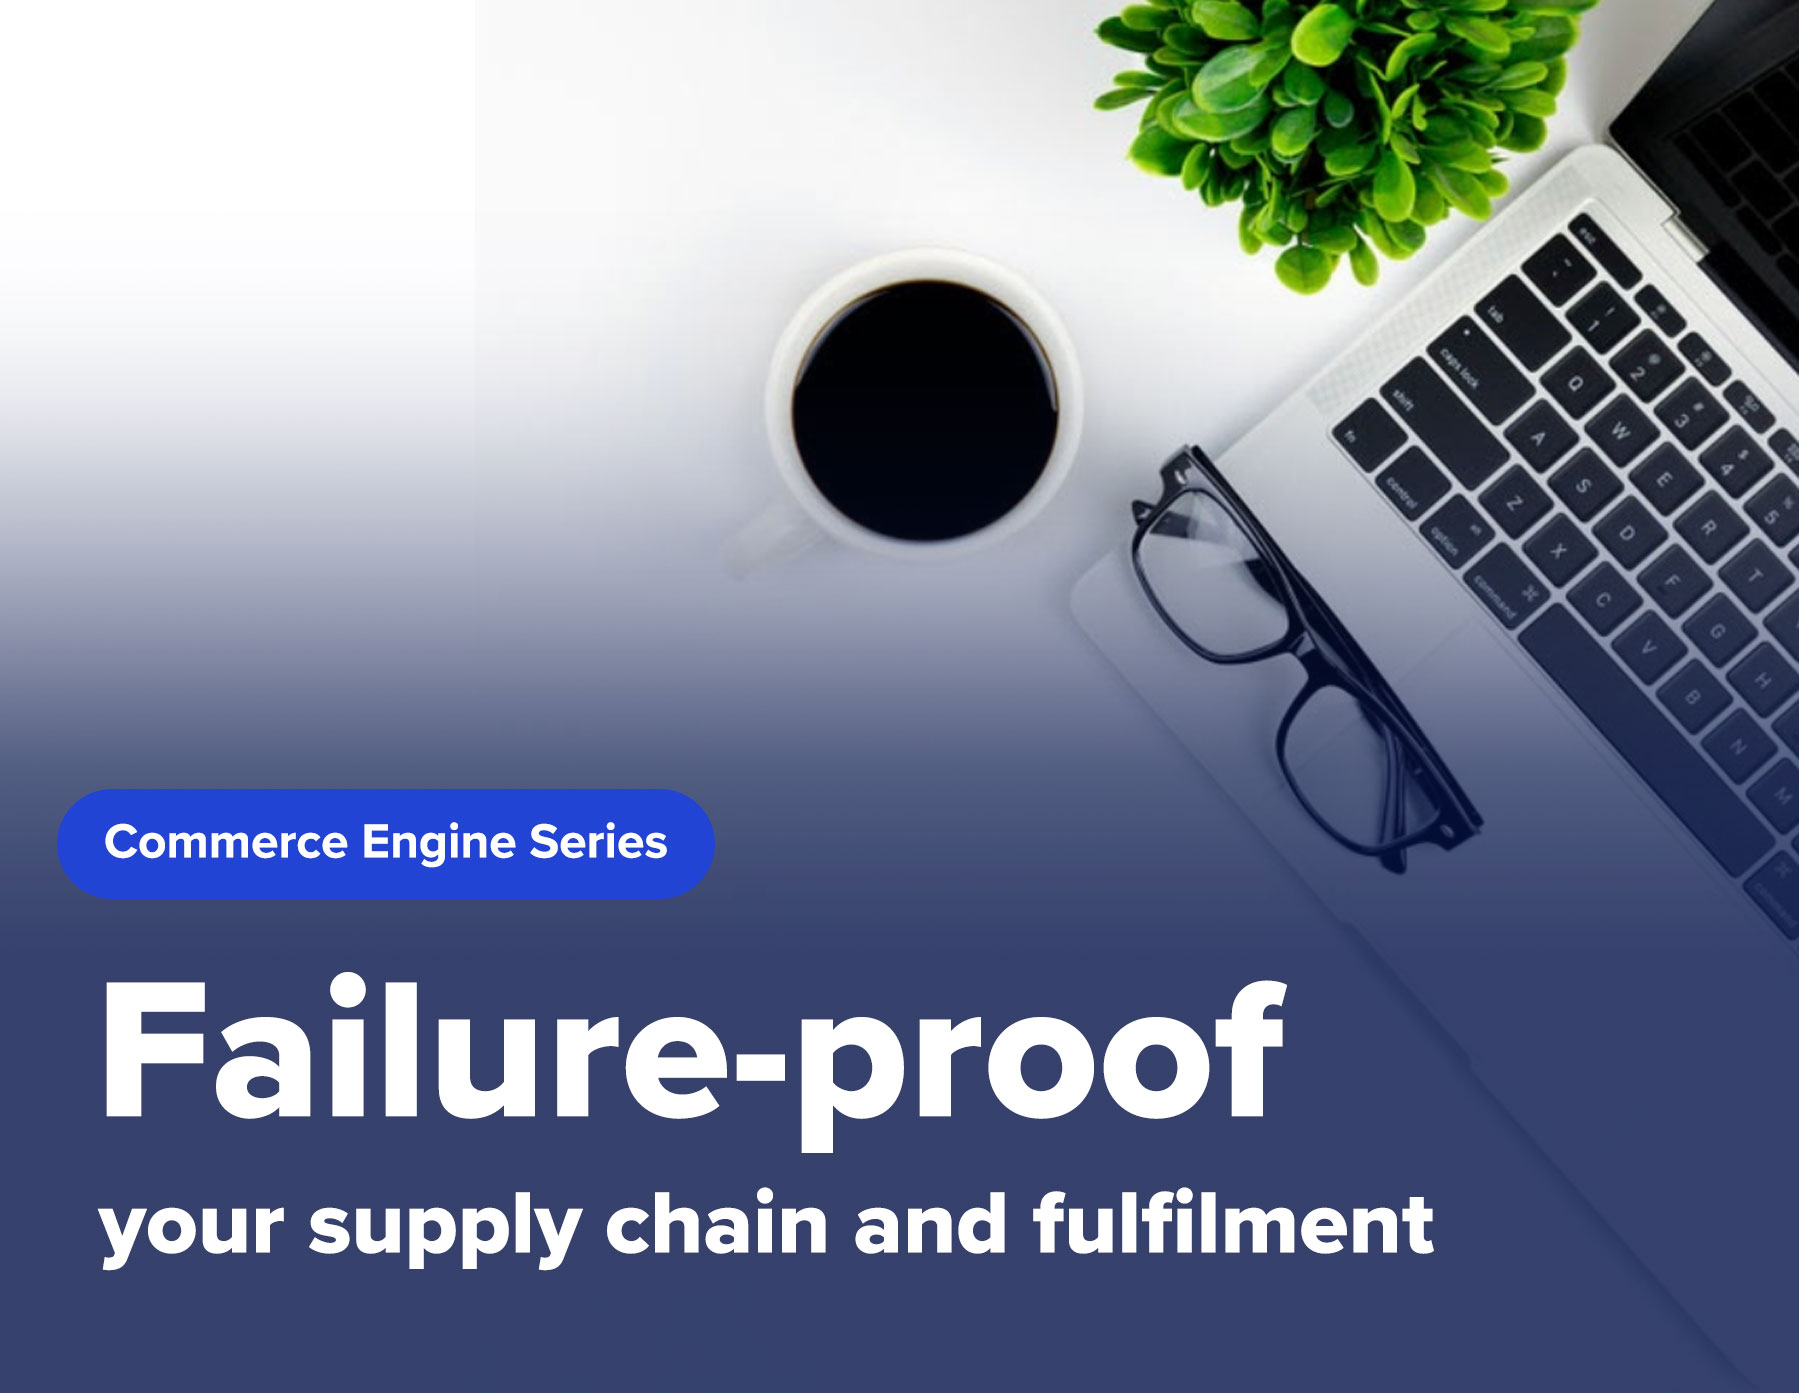 Failure-proof your supply chain and fulfilment